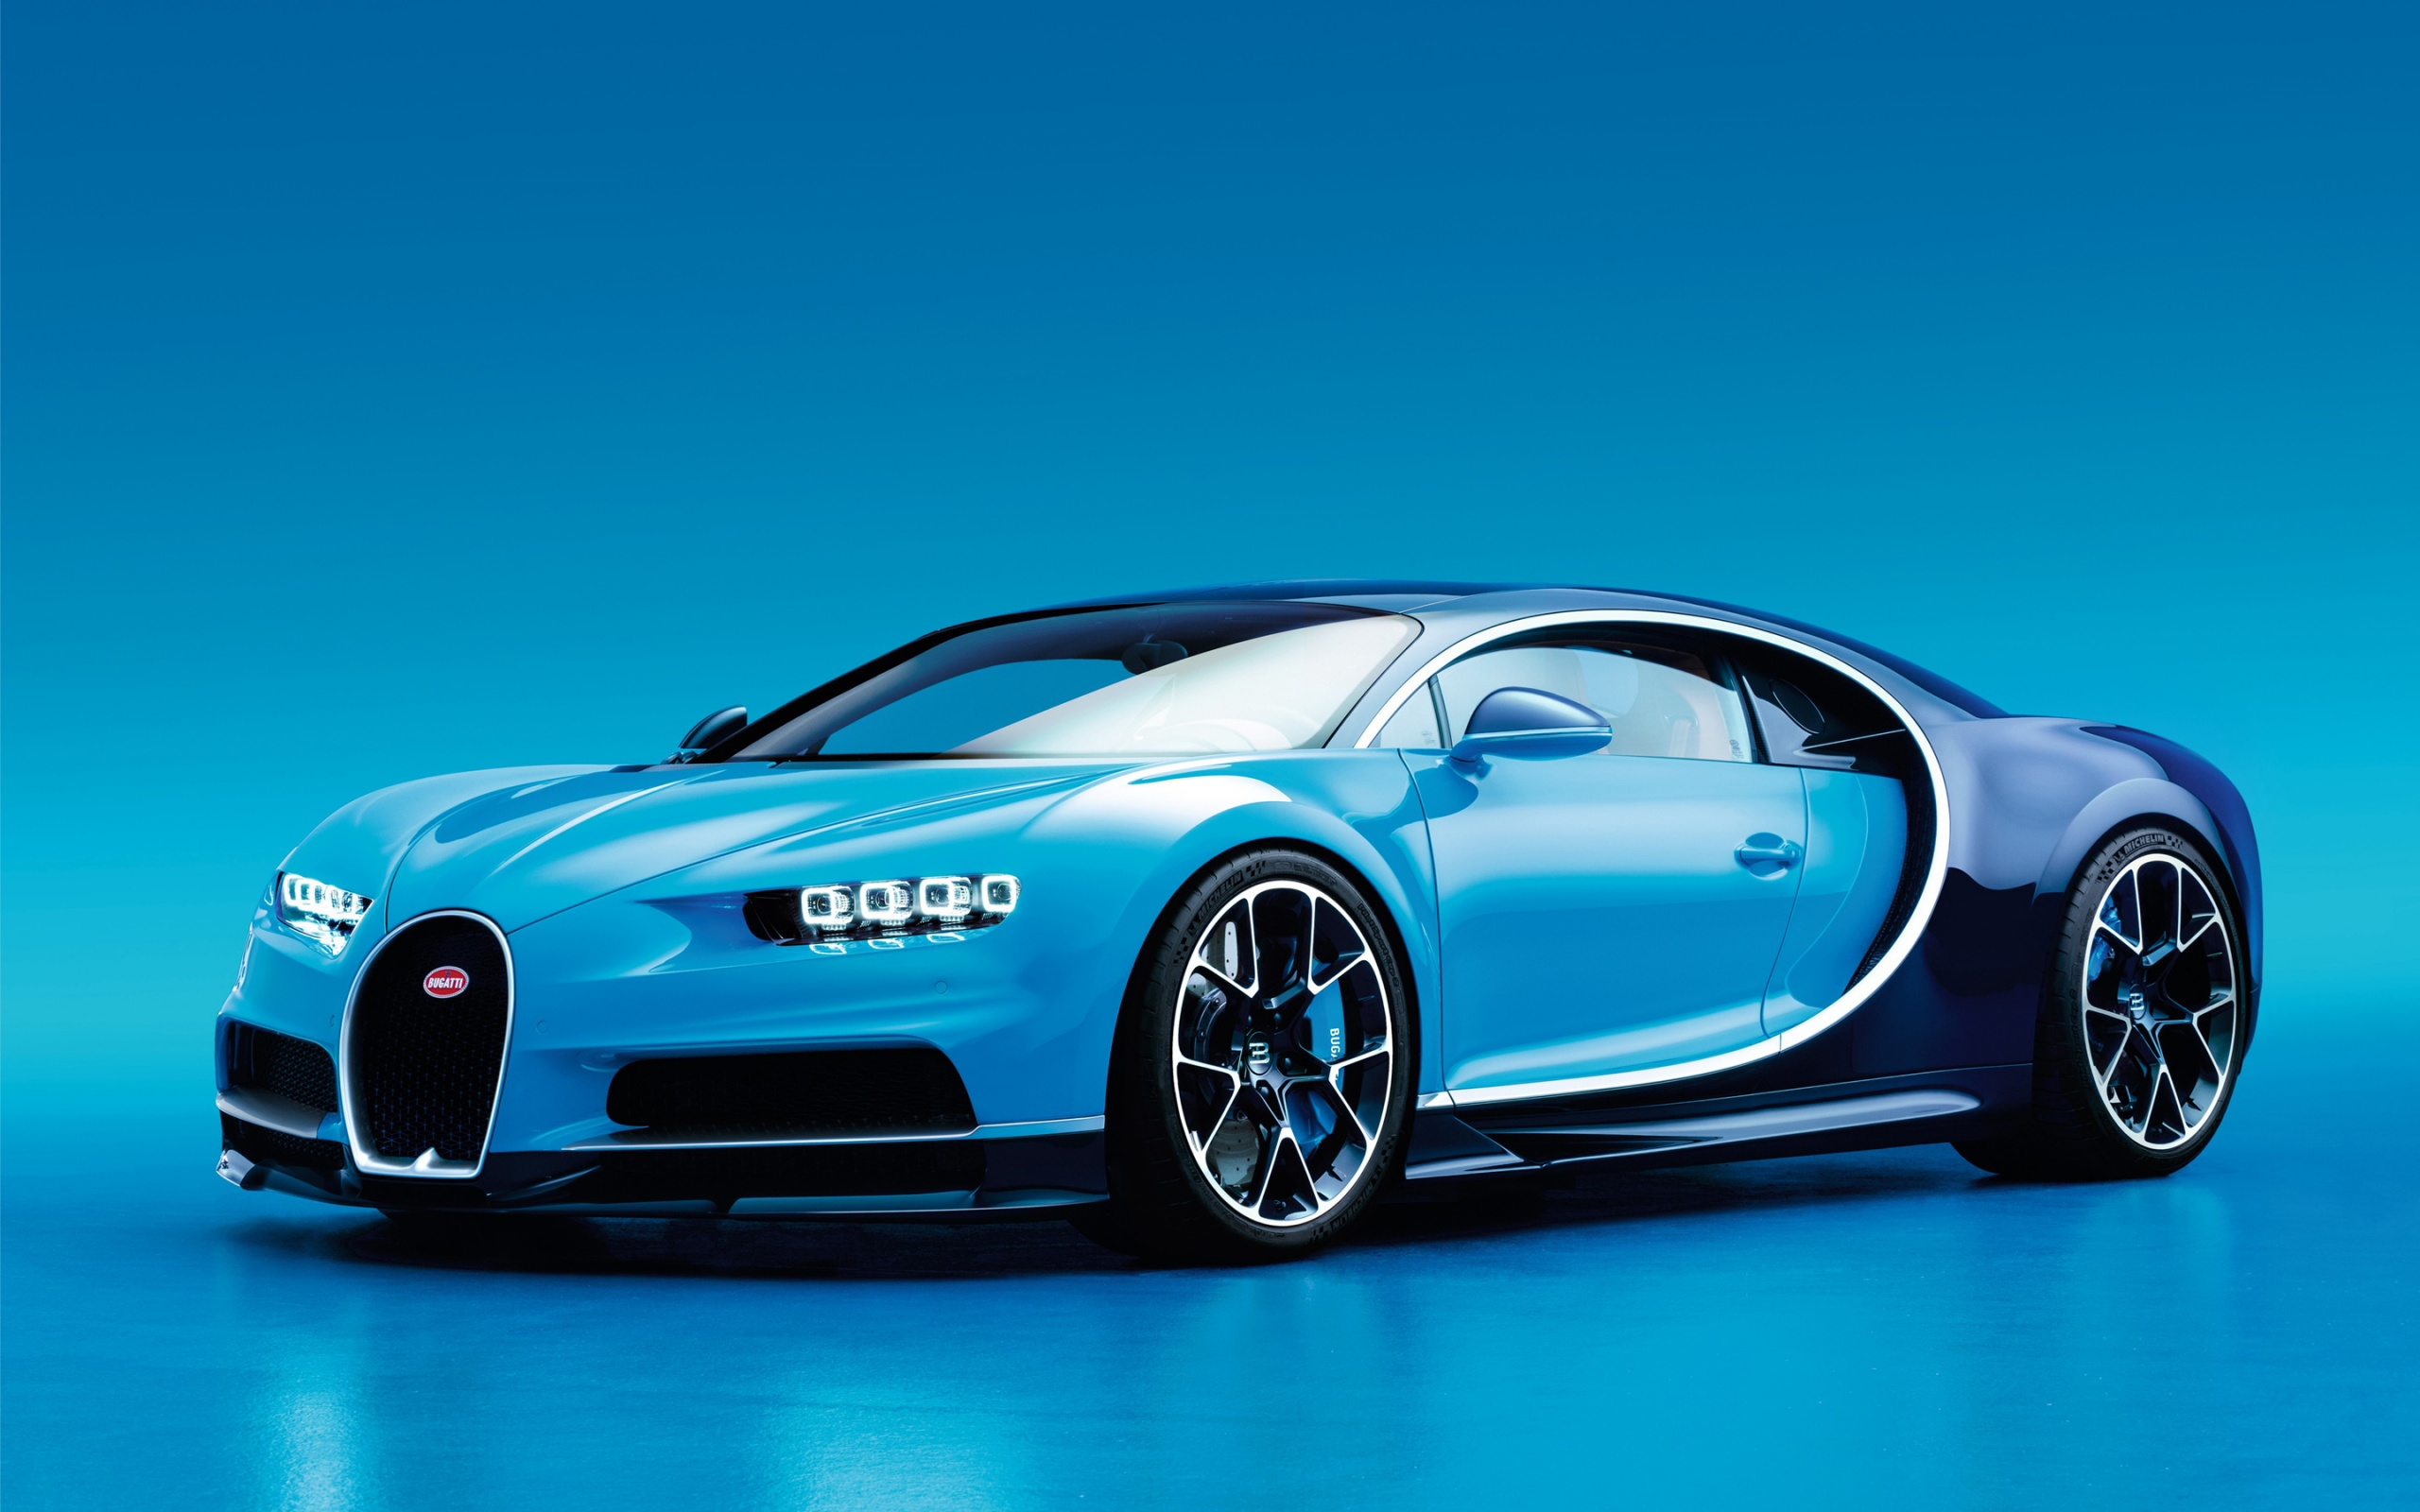 2017 bugatti chiron wallpapers in jpg format for free download